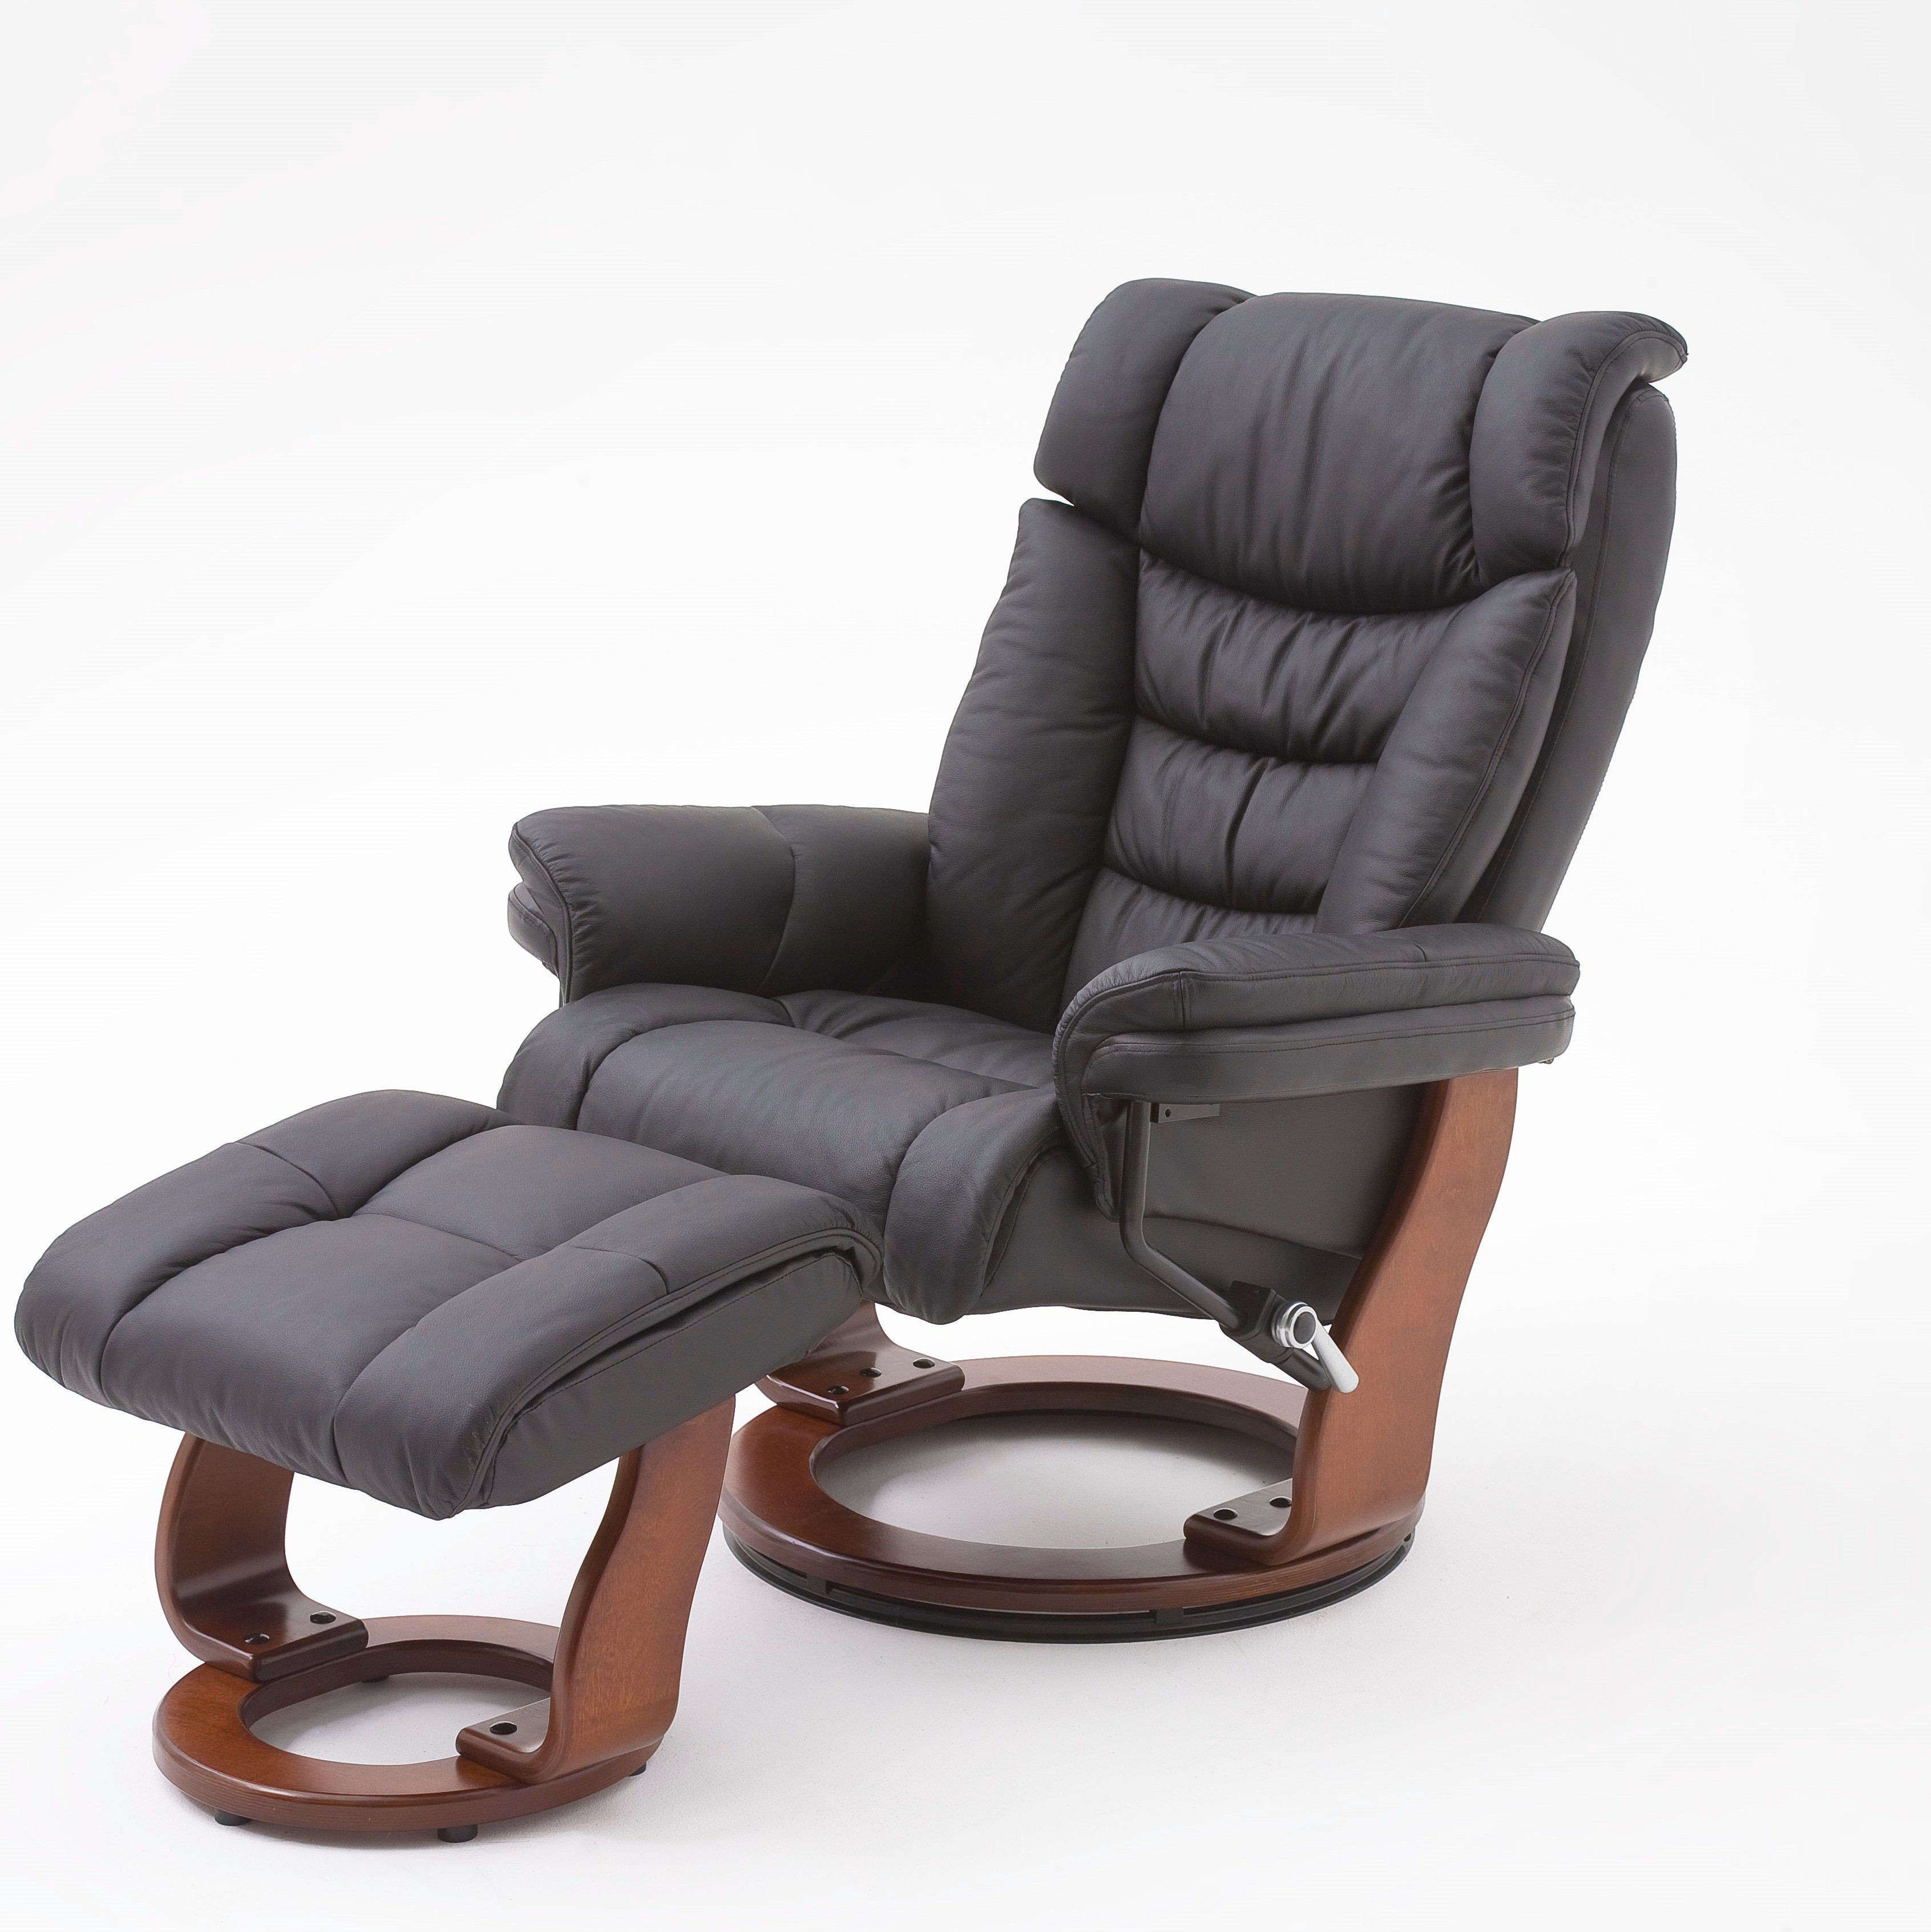 Reclining Chairs Toronto Buy Cheap Leather Swivel Reclining Chair Compare Chairs